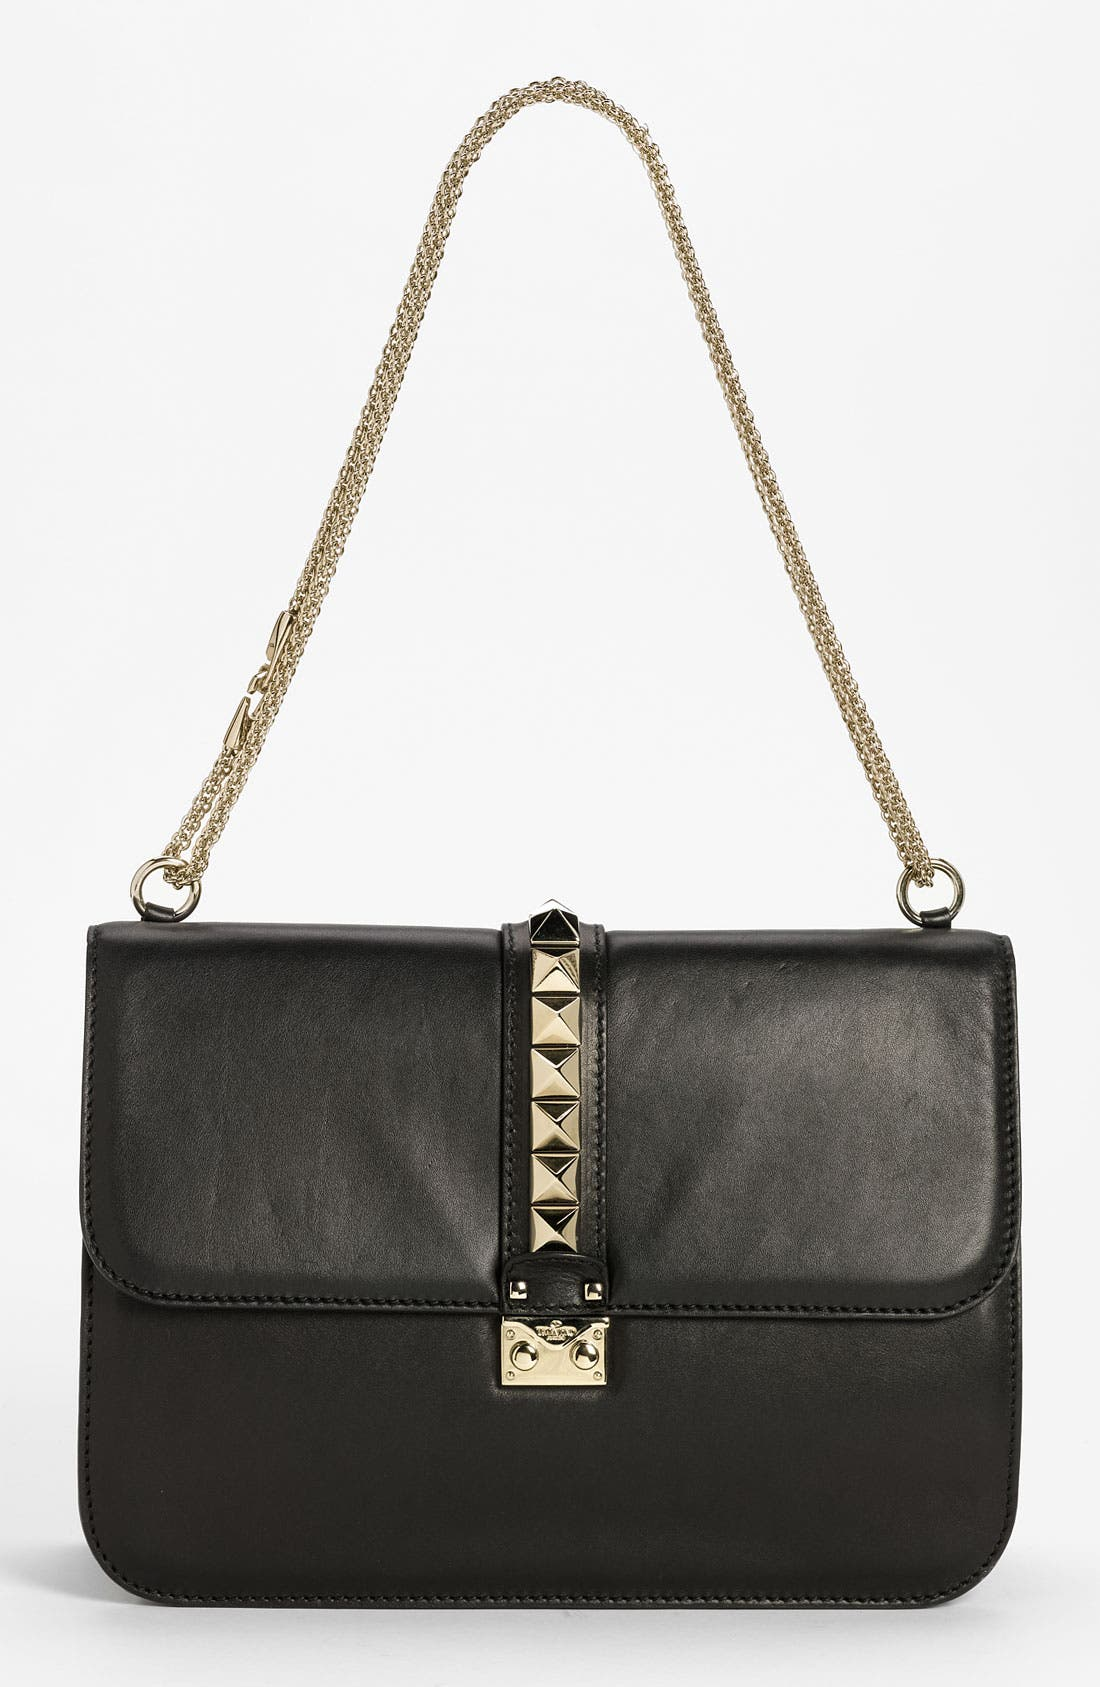 Main Image - Valentino 'Grande Lock' Leather Shoulder Bag